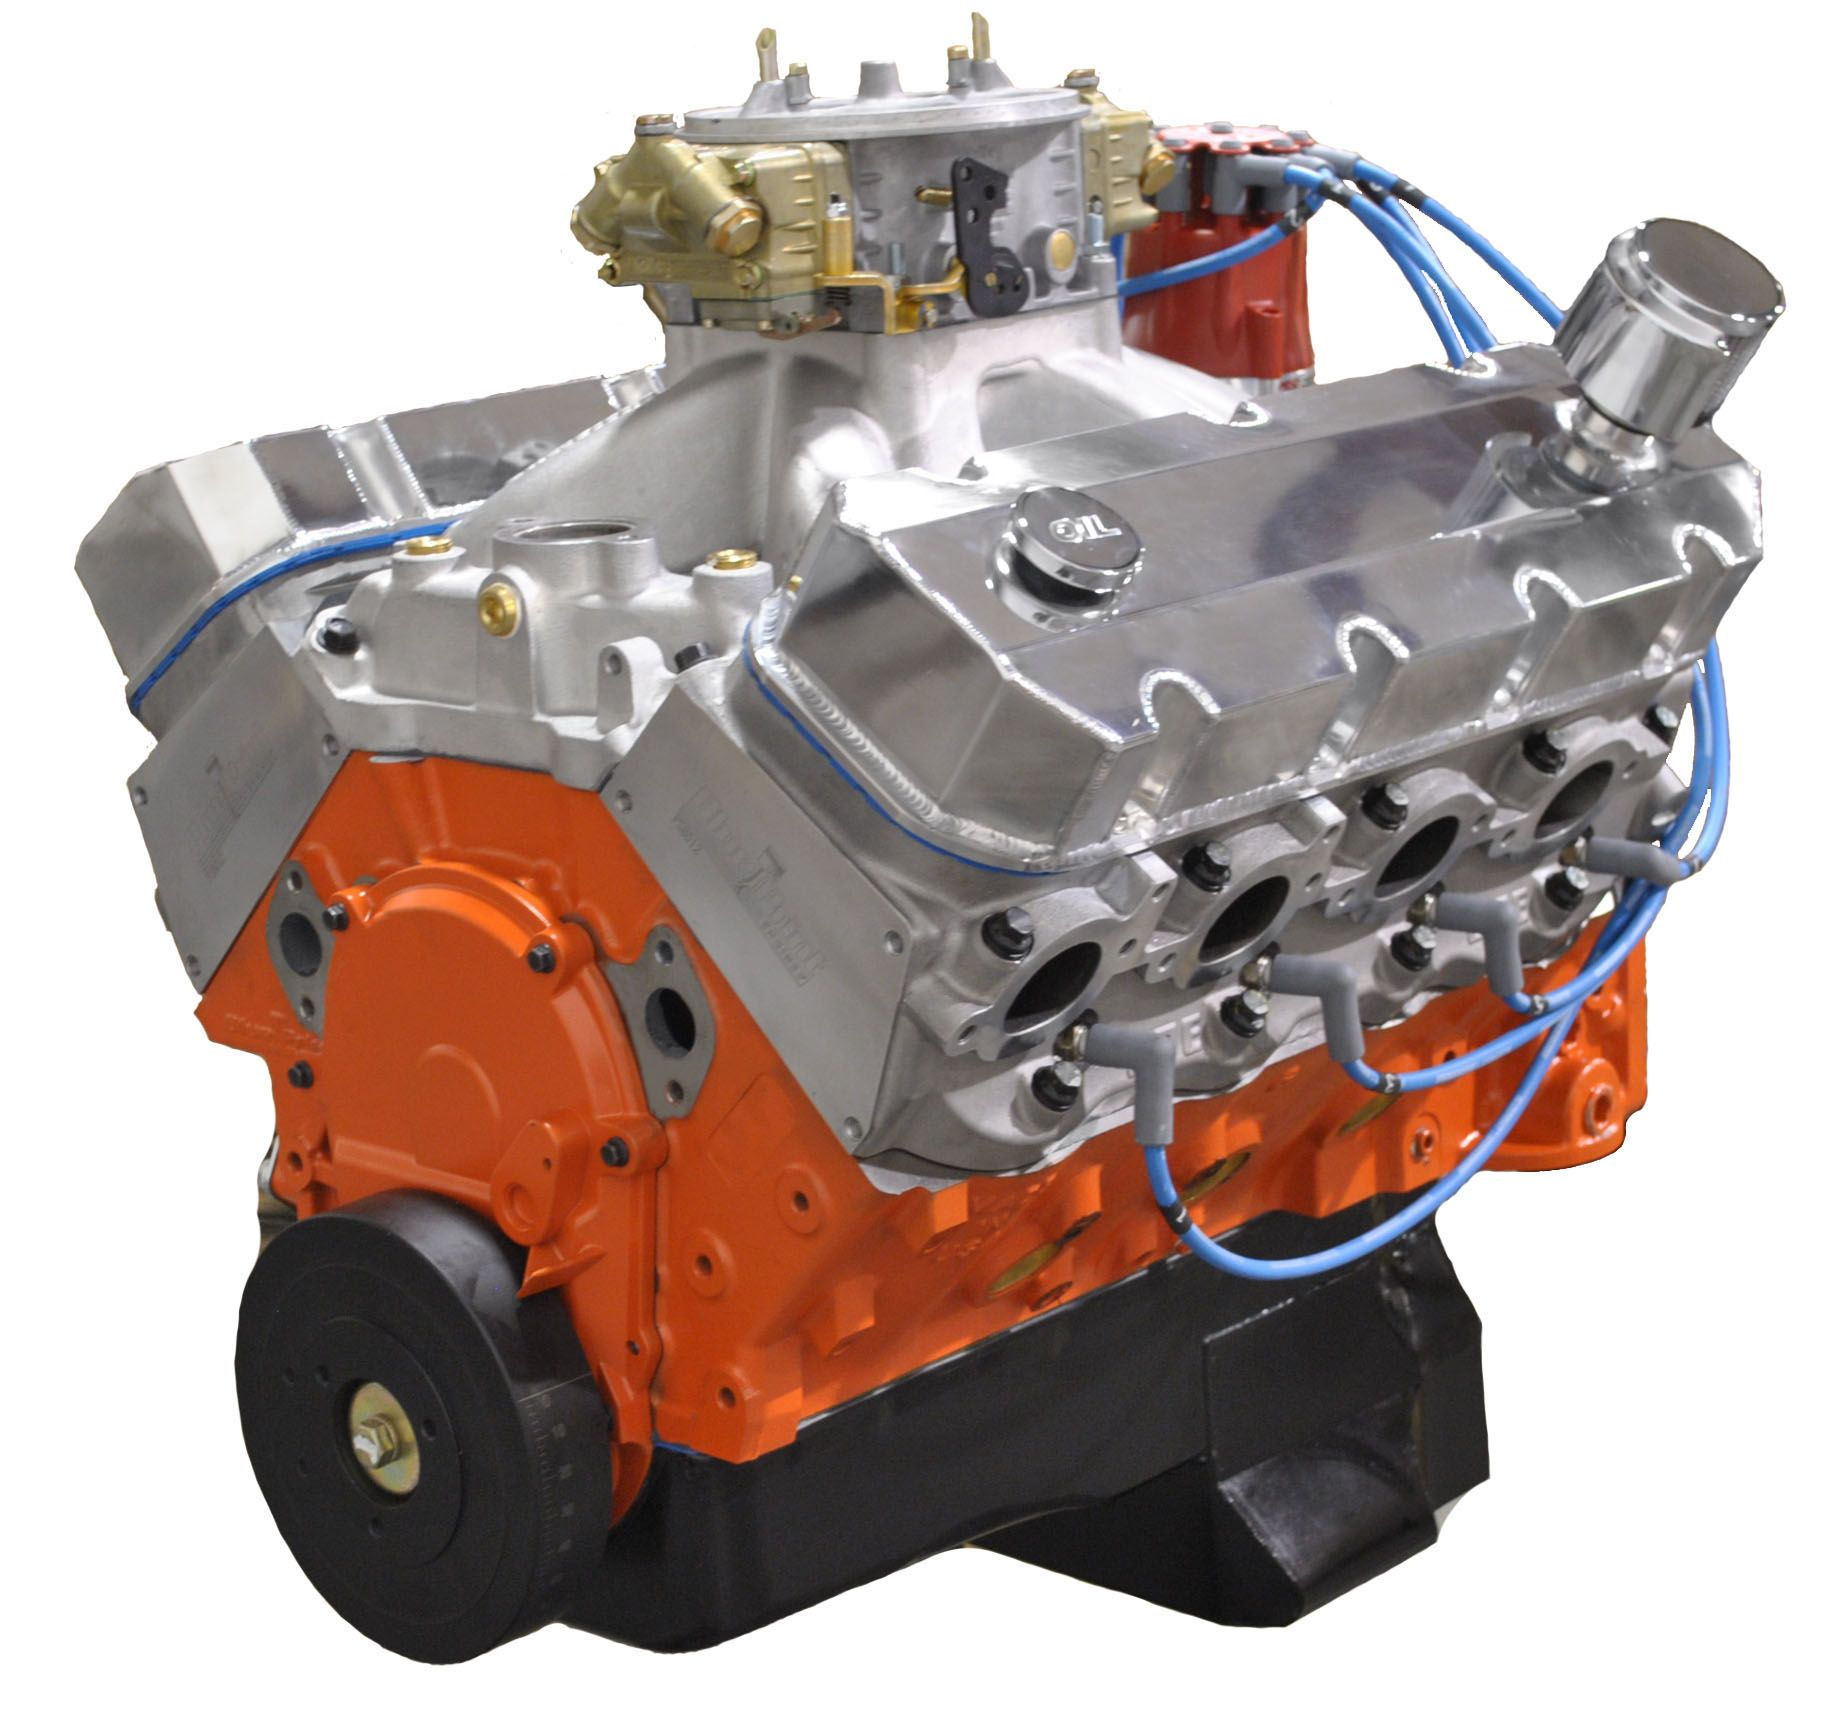 Blueprint engines proseries ps6320ctc crate engine crateengine blueprint engines proseries ps6320ctc crate engine crateengine blueprintengines 632bigblock ps6320ctc malvernweather